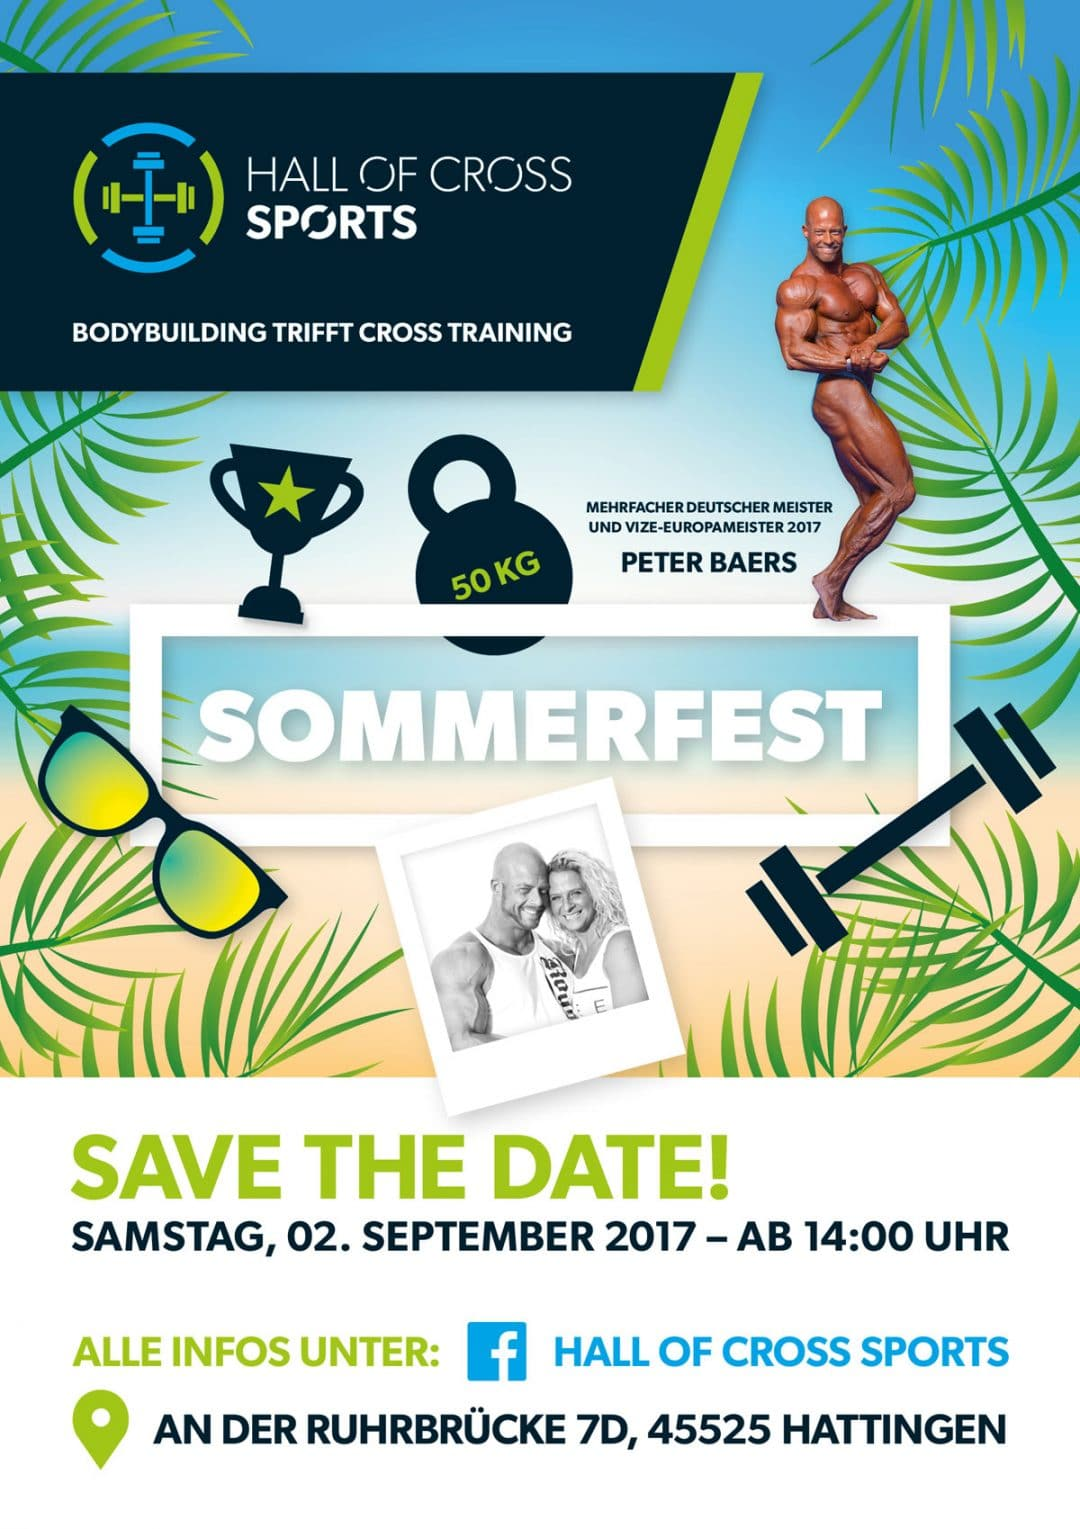 Hall of Cross Sports Sommerfest